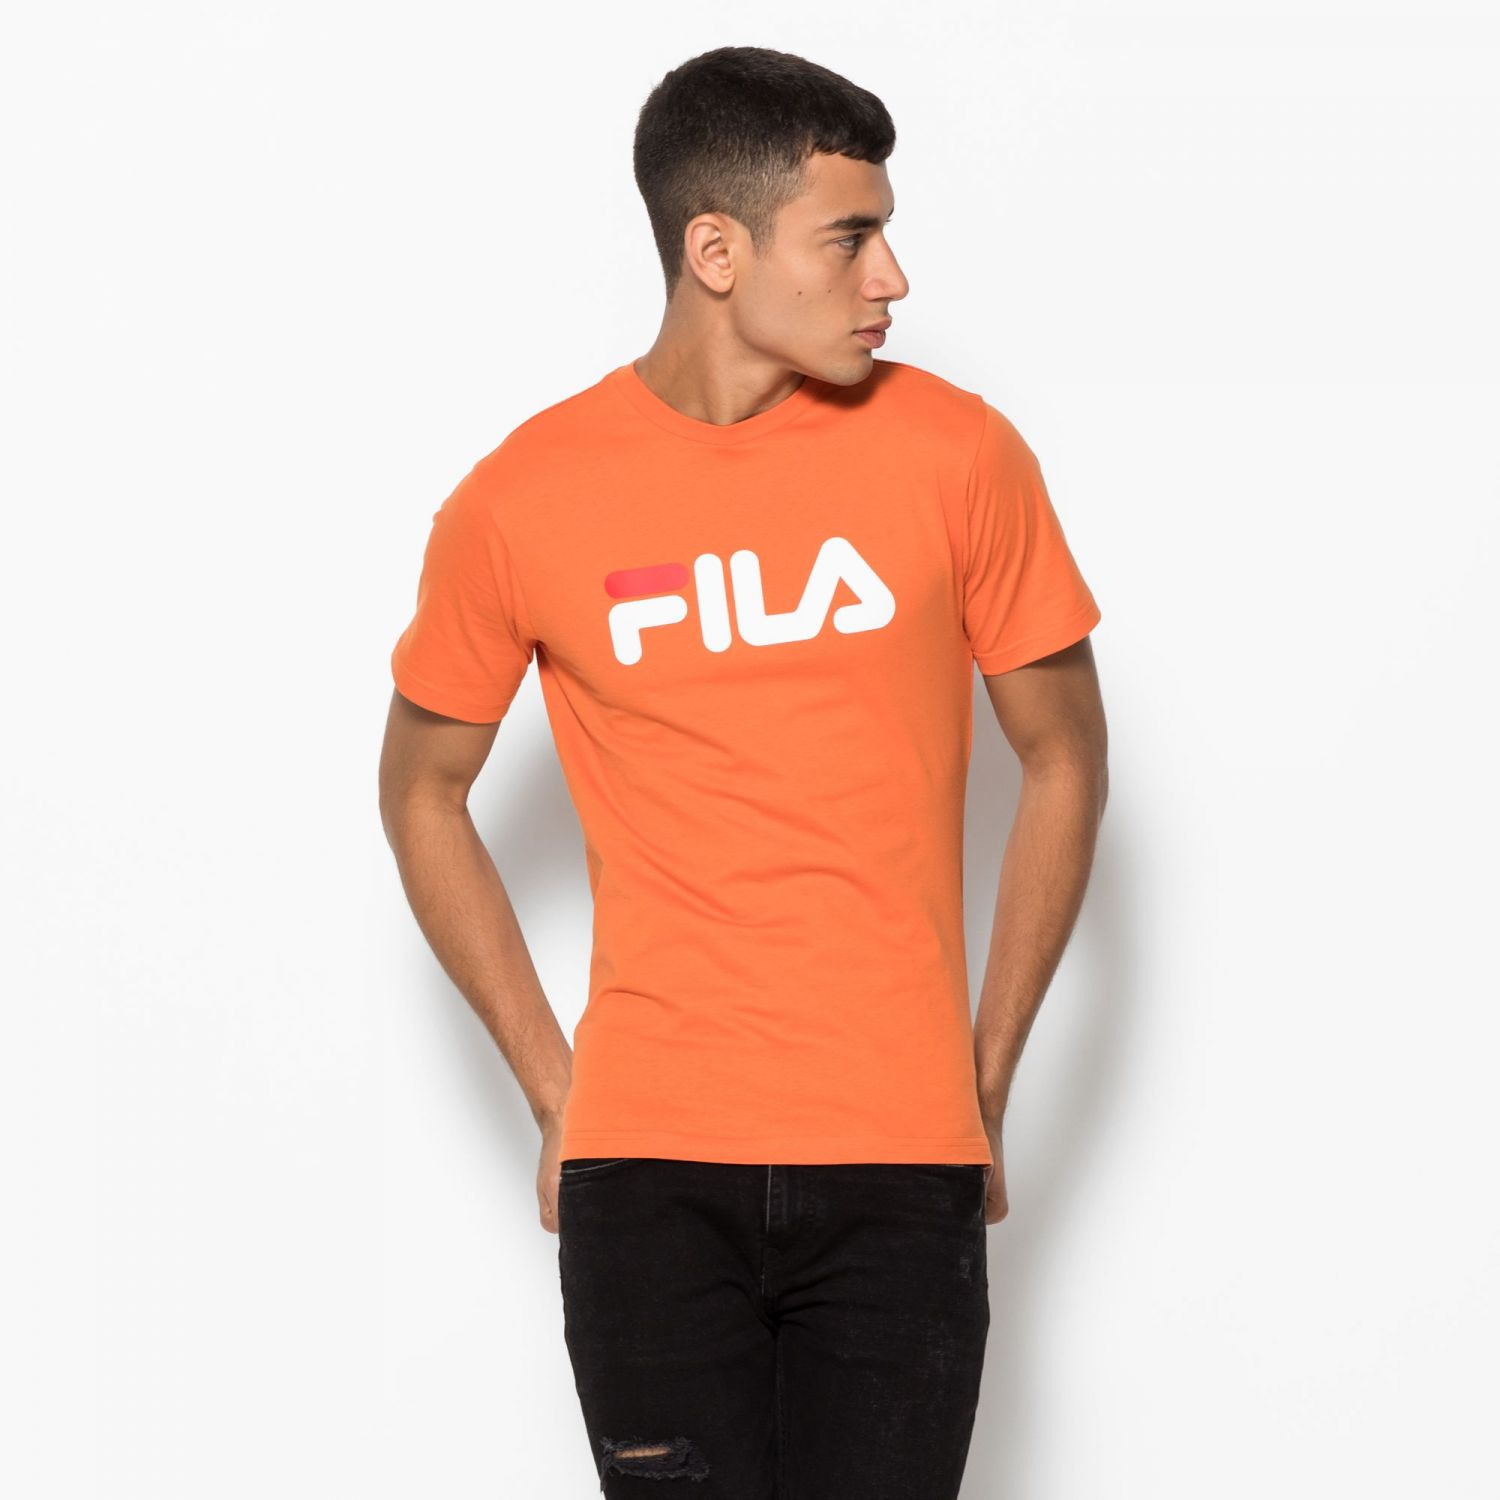 Fila - Classic Pure Tee - 00014201660011 - orange  4f4983a3c4d